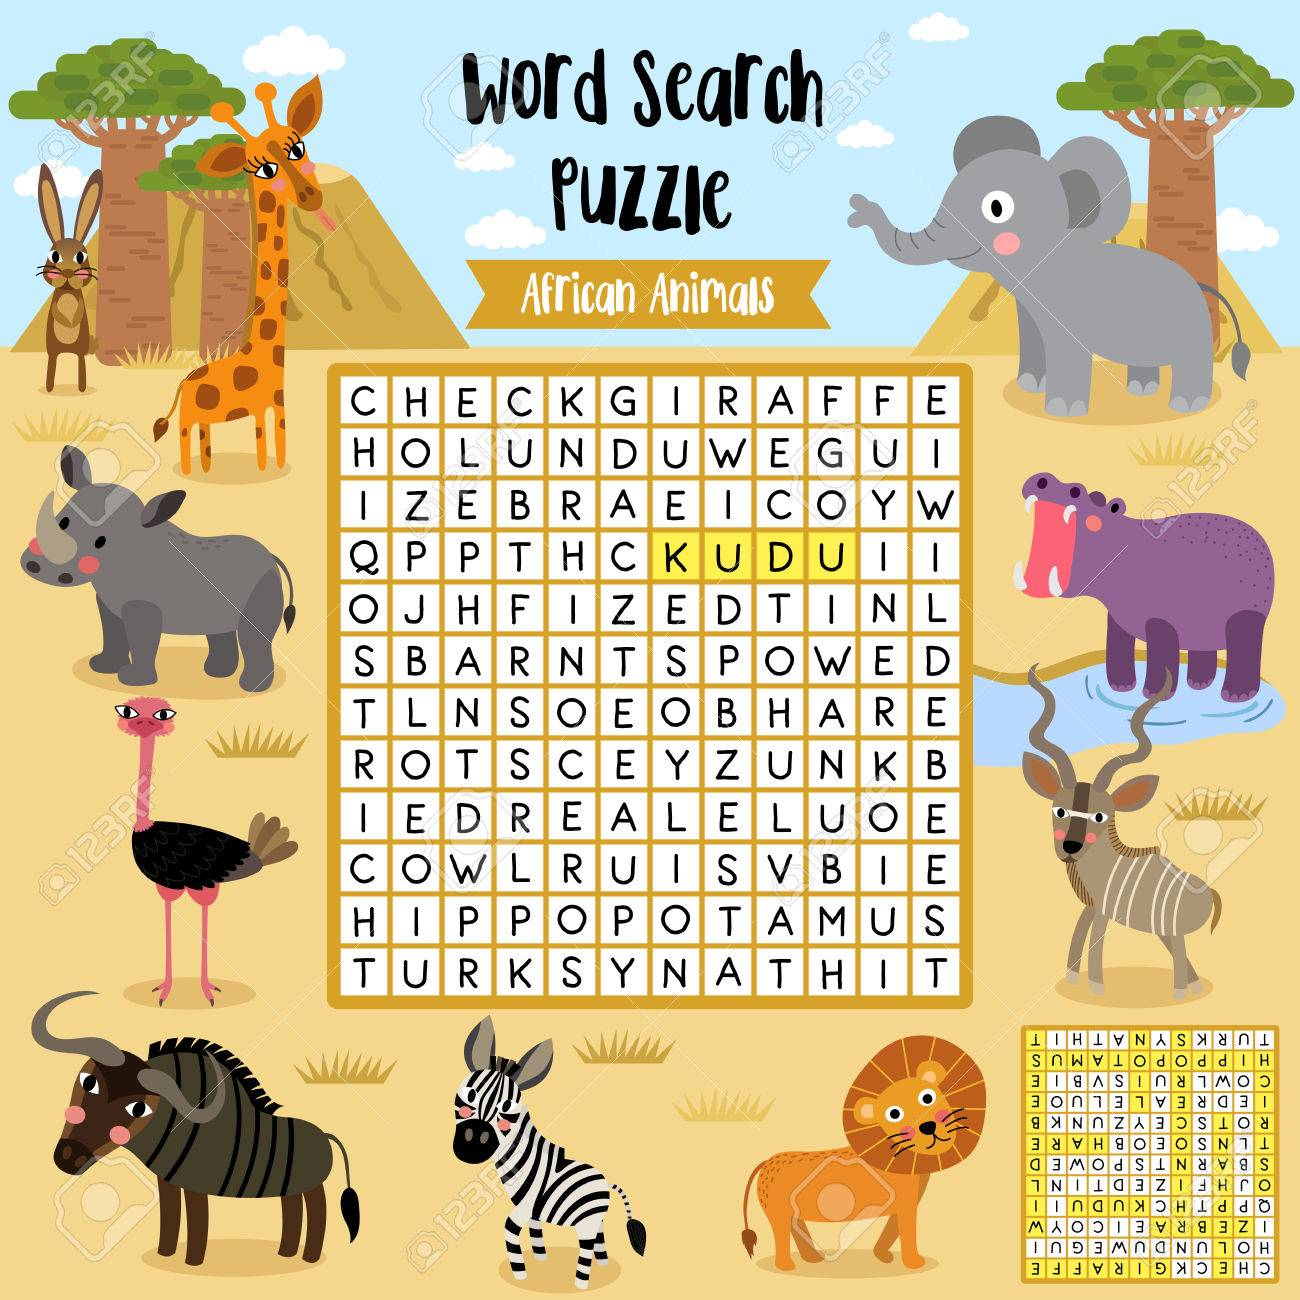 Words Search Puzzle Game Of African Animals For Preschool Kids